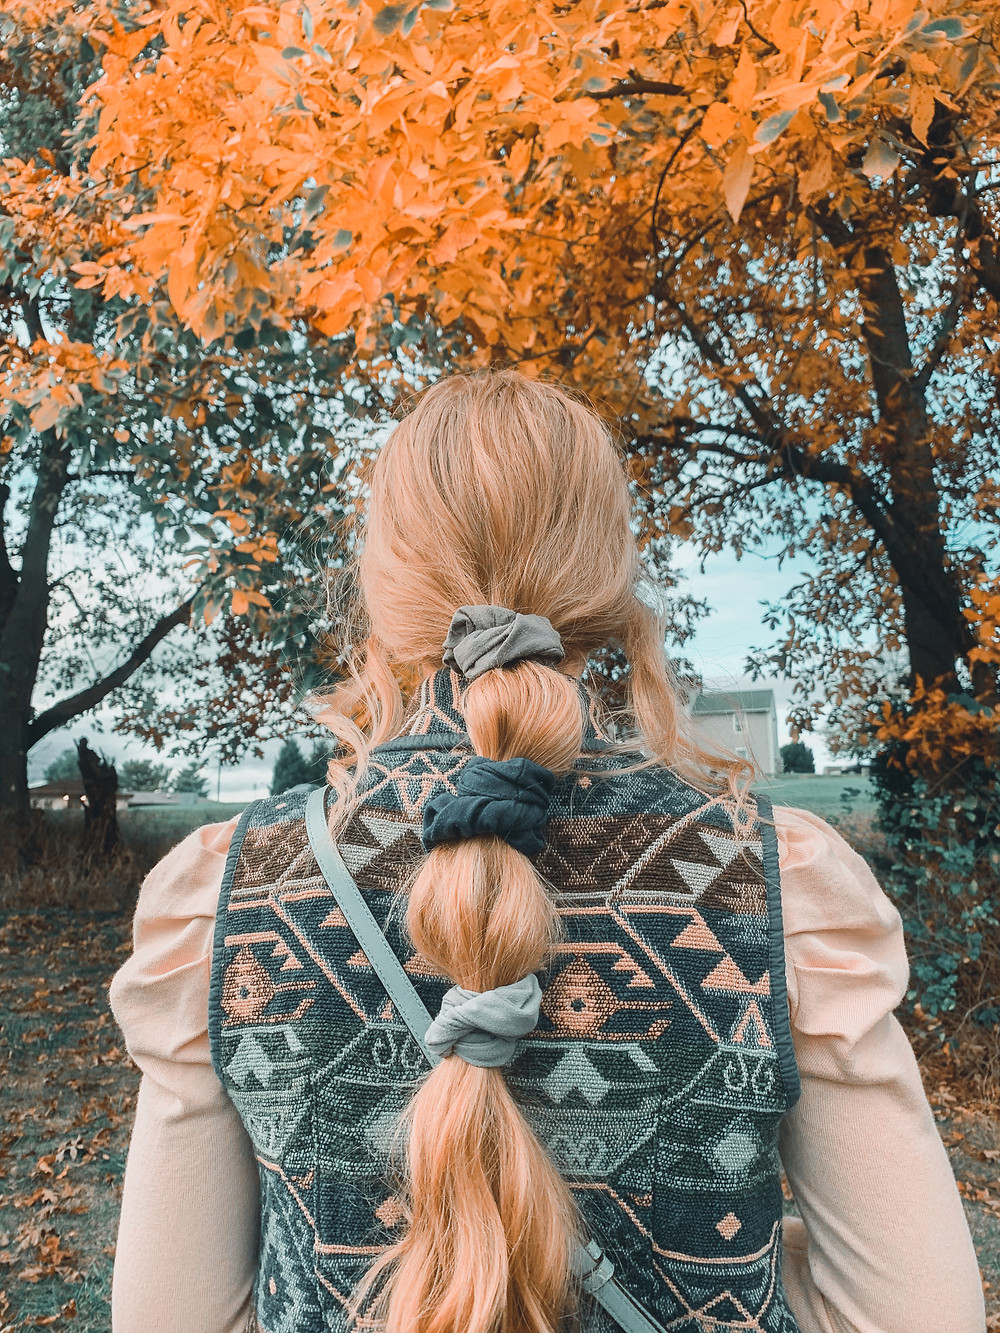 blonde hair, blonde ponytail, vest, aztec print vest, vintage clothes, thrifted clothes, April Heil, April M. Heil, fall leaves, orange leaves, jeans, Target boots